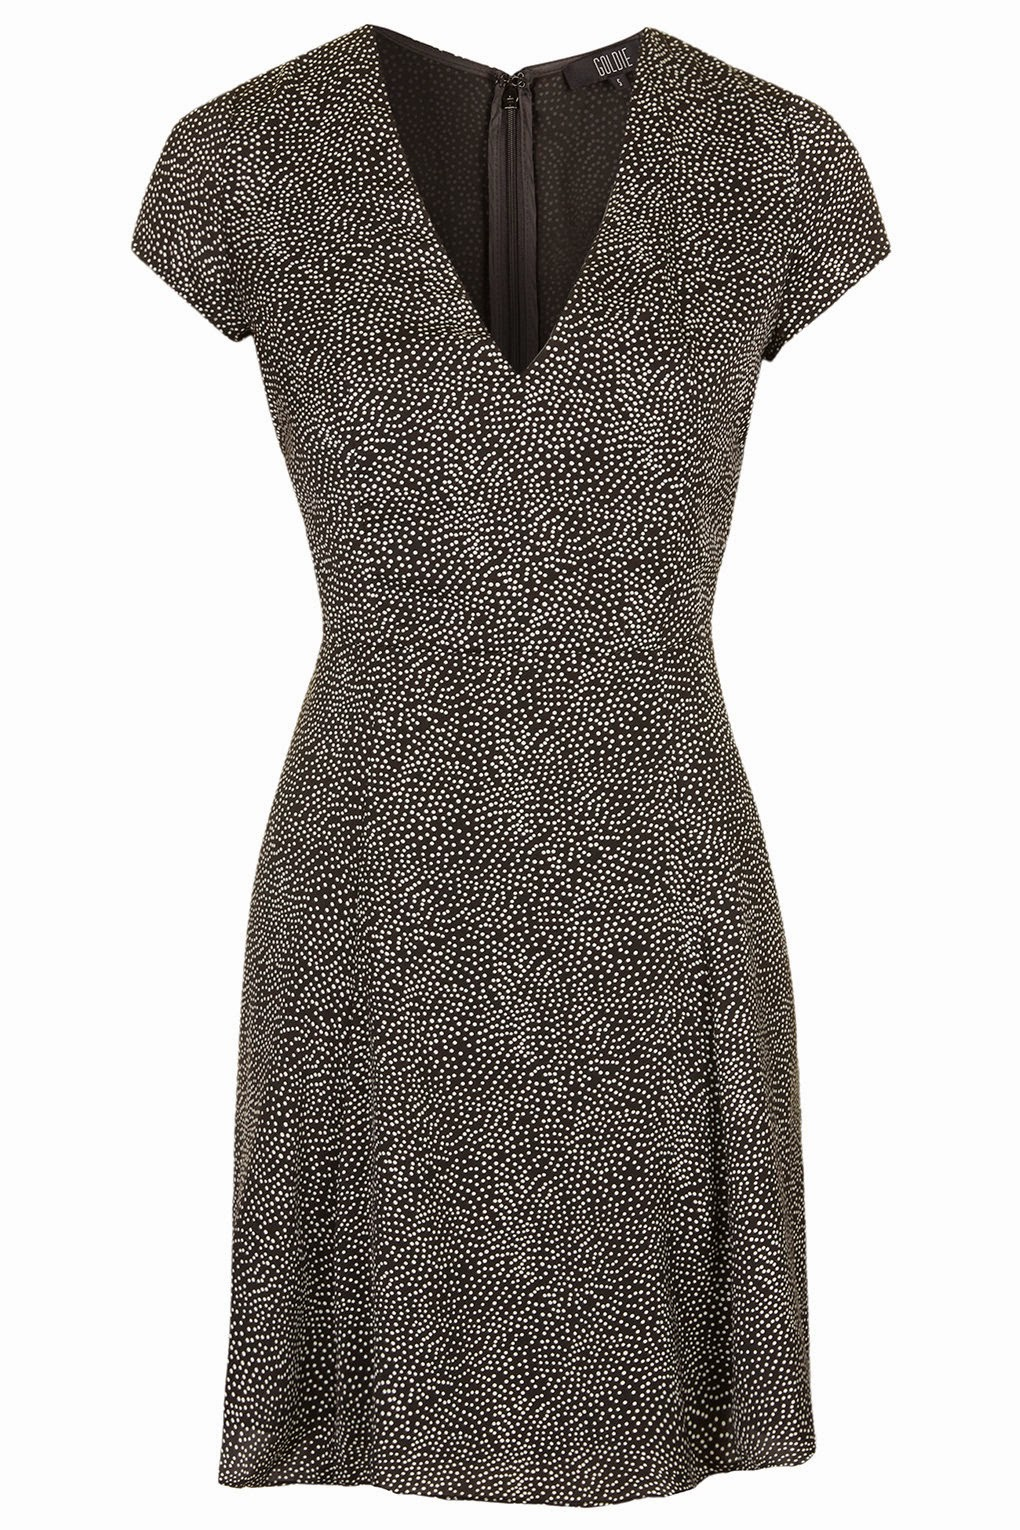 spotty goldie dress, topshop black tea dress,